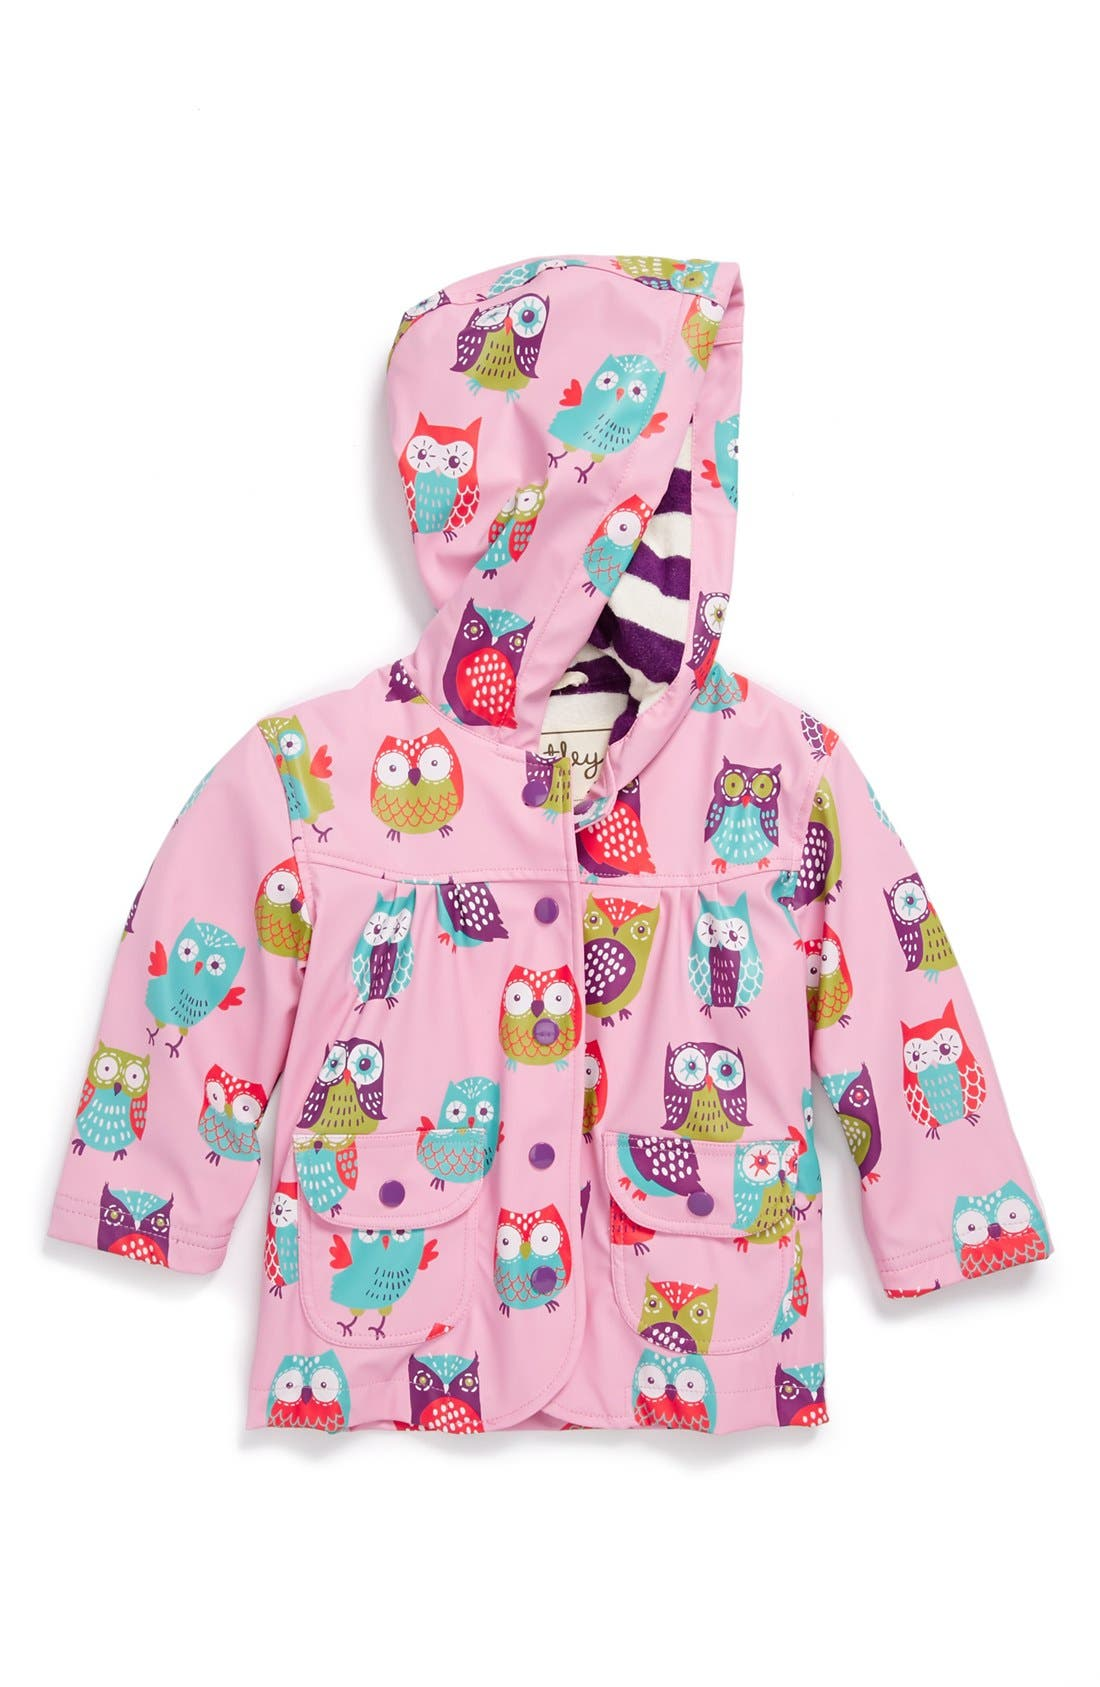 Main Image - Hatley 'Party Owls' Rain Jacket (Toddler Girls, Little Girls & Big Girls)